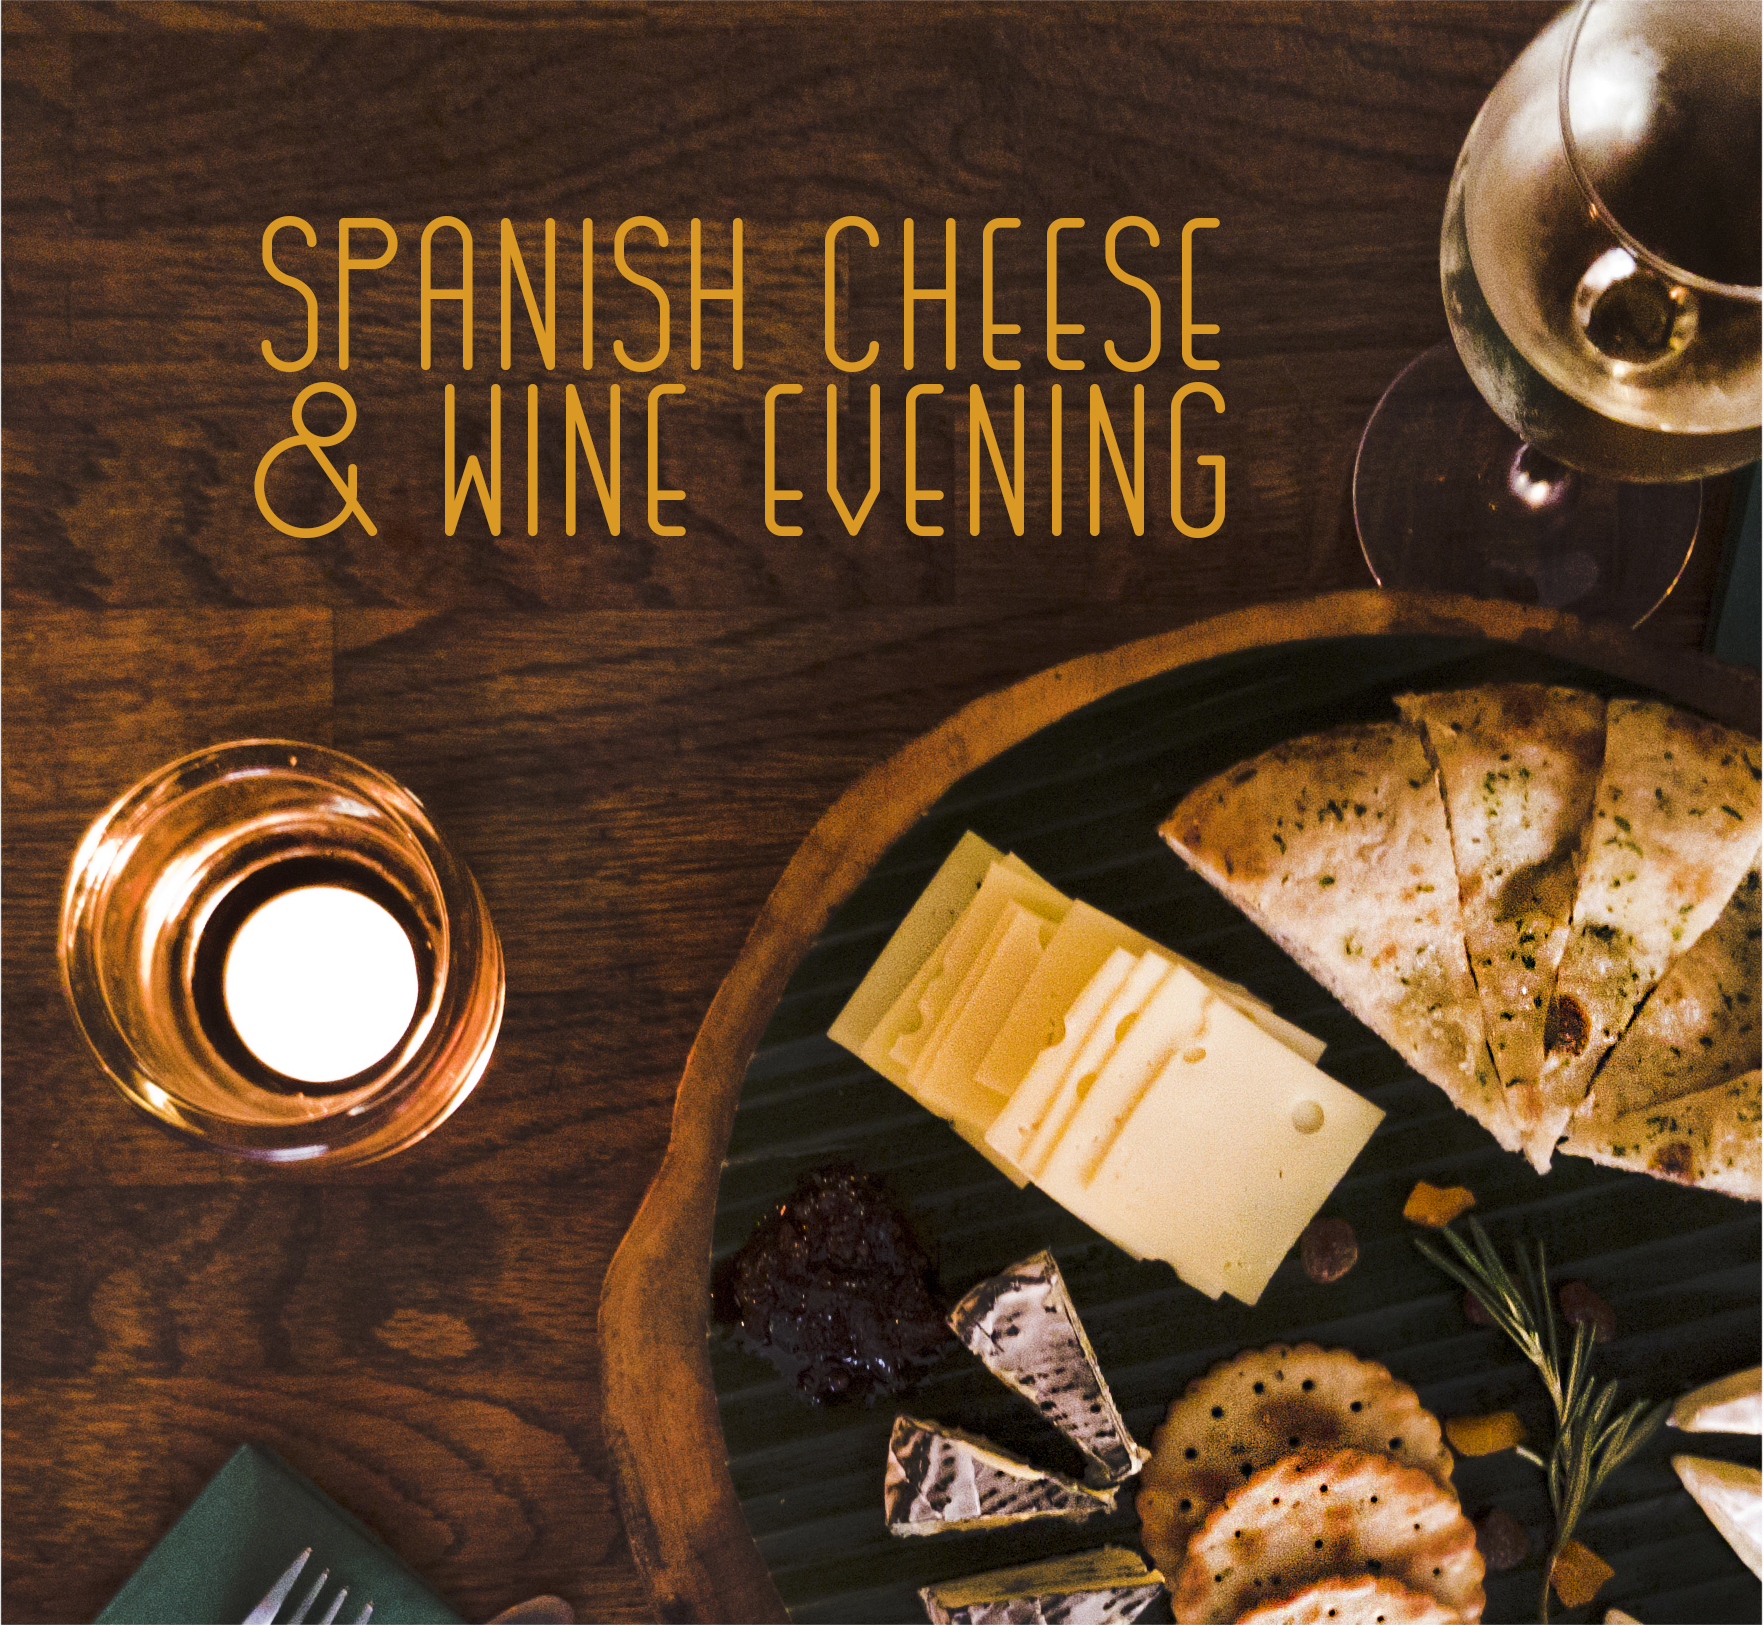 Spanish Cheese and Wine evening